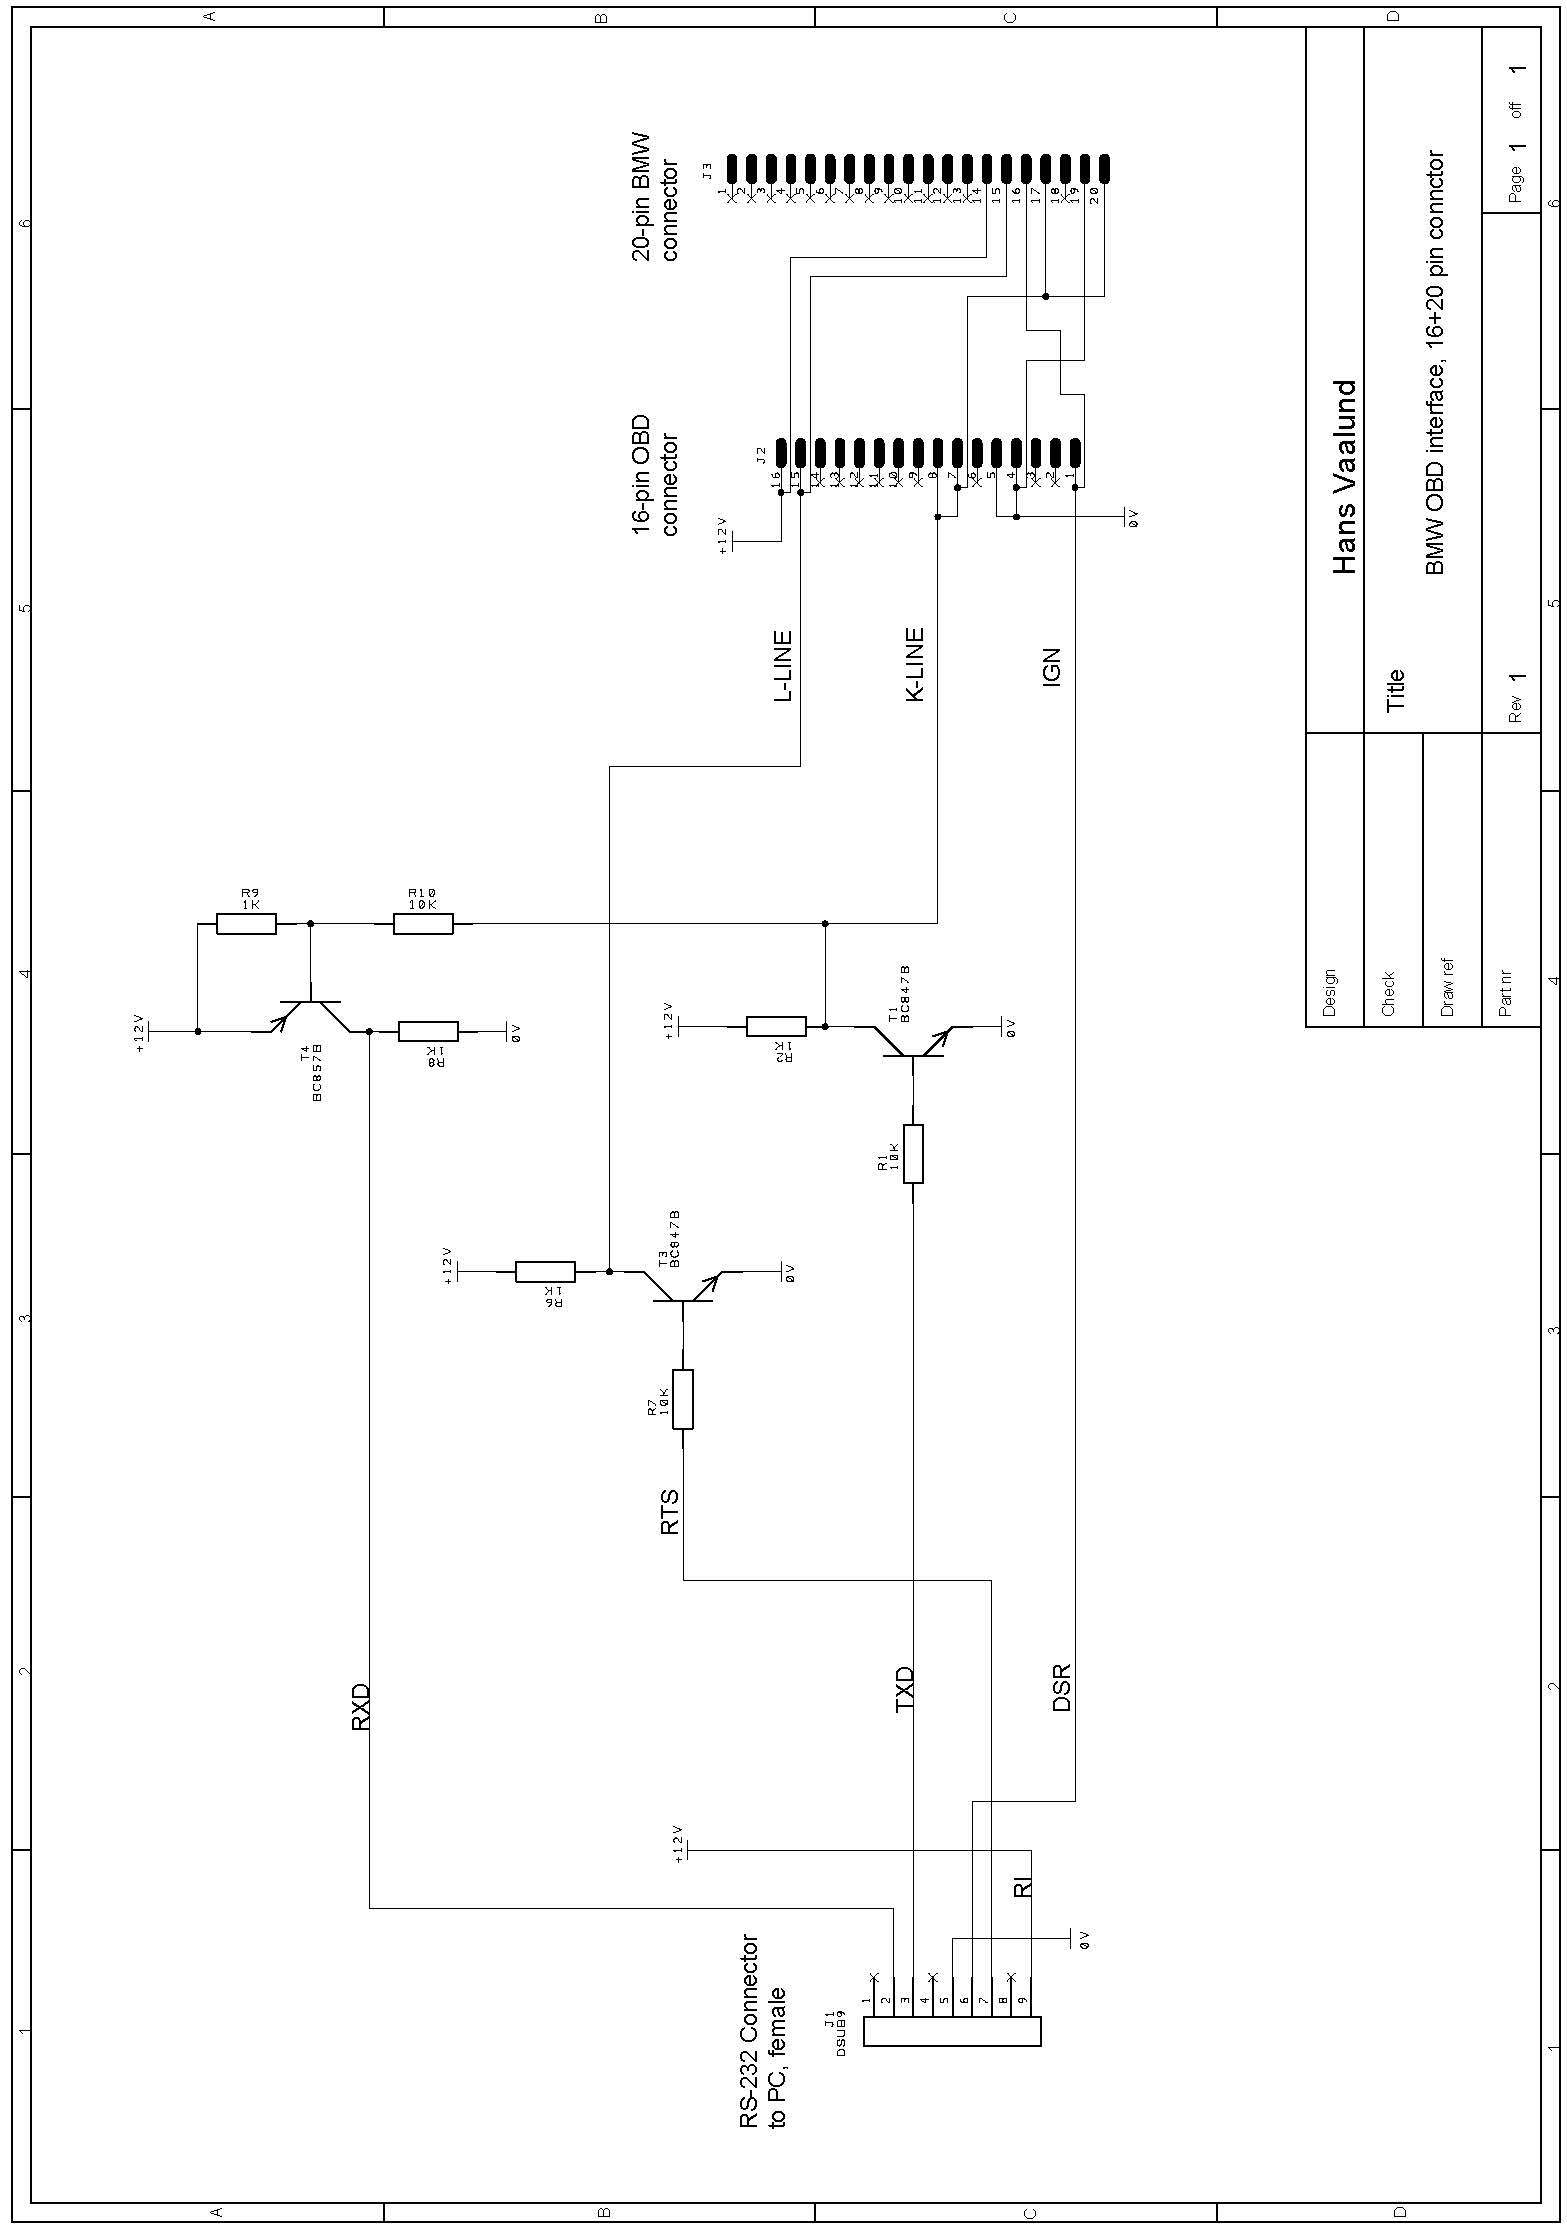 Ads Pre Obd Connections To Carloop Bmw Car Hacking Community 25 Pin Rs232 Wiring Diagram Interface1567x2231 109 Kb